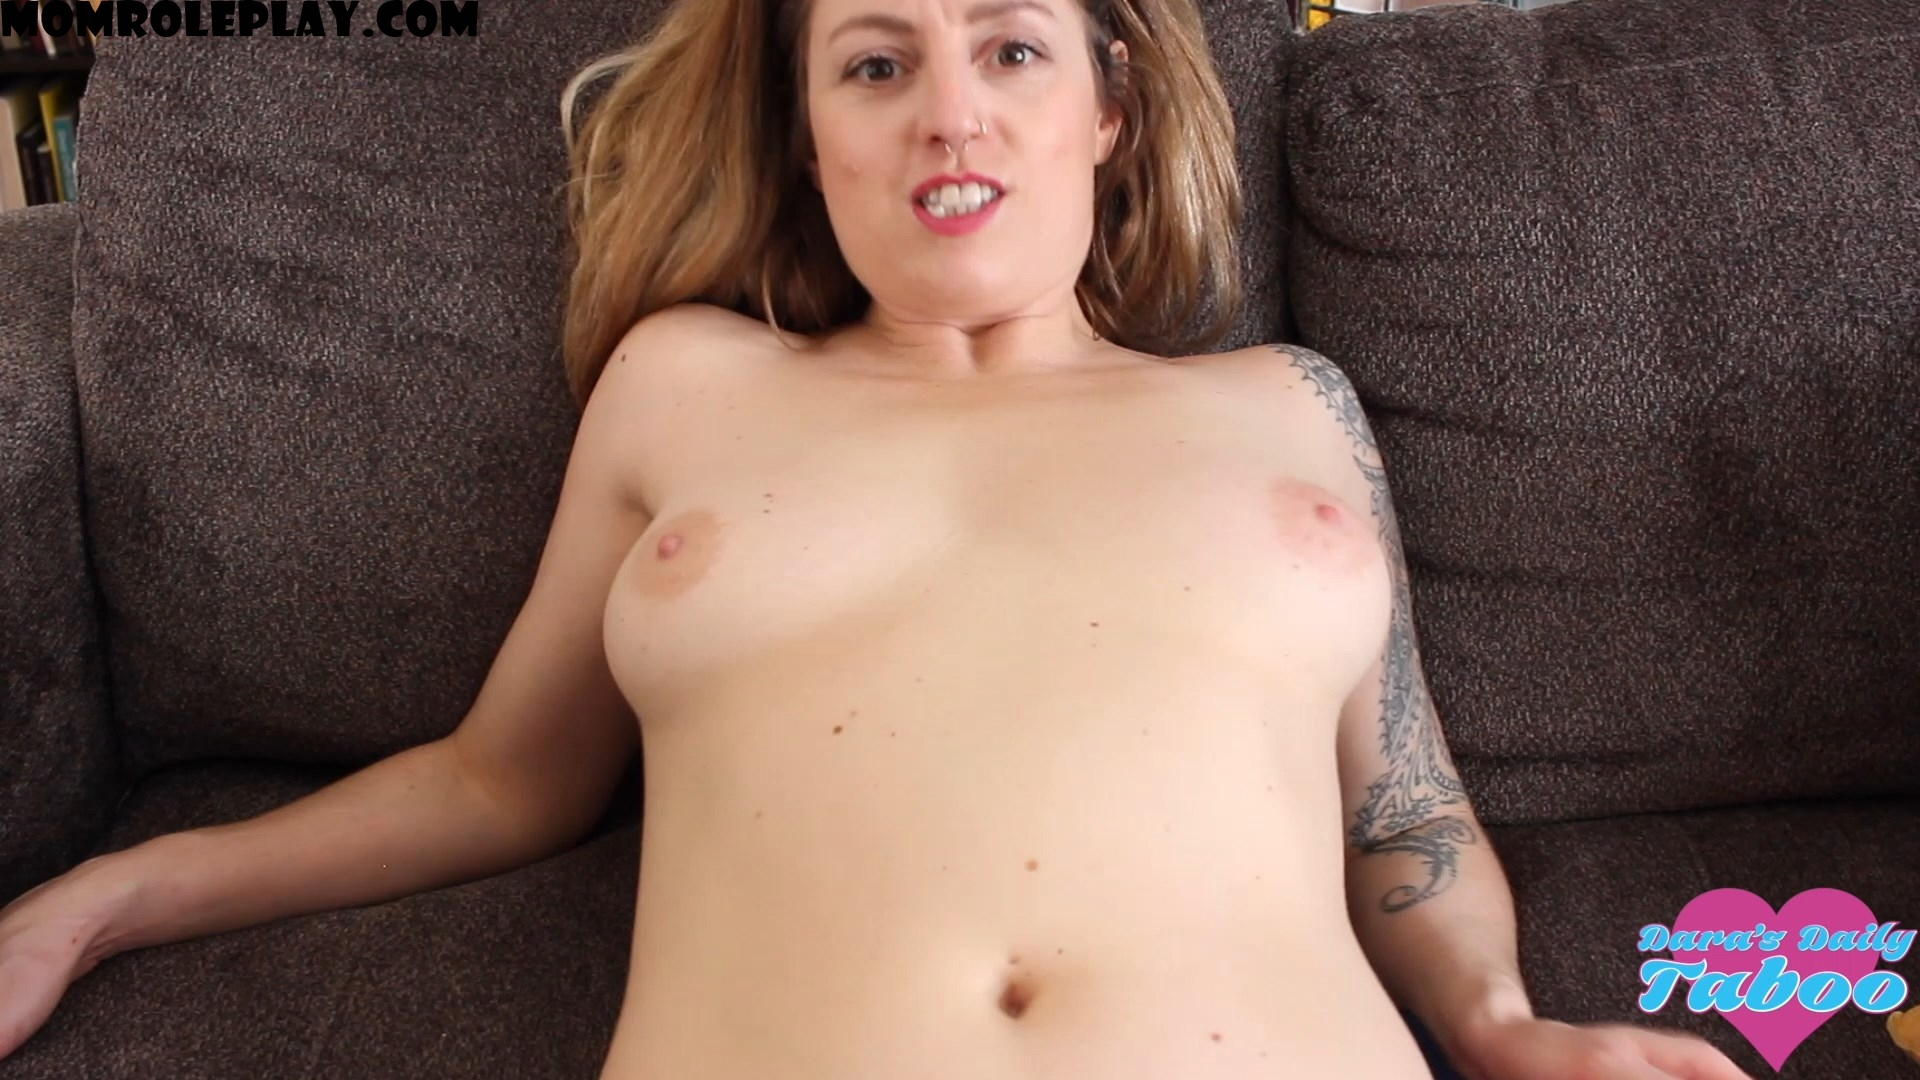 Daras Daily Taboo - Finally Fucking Best Friends Mom